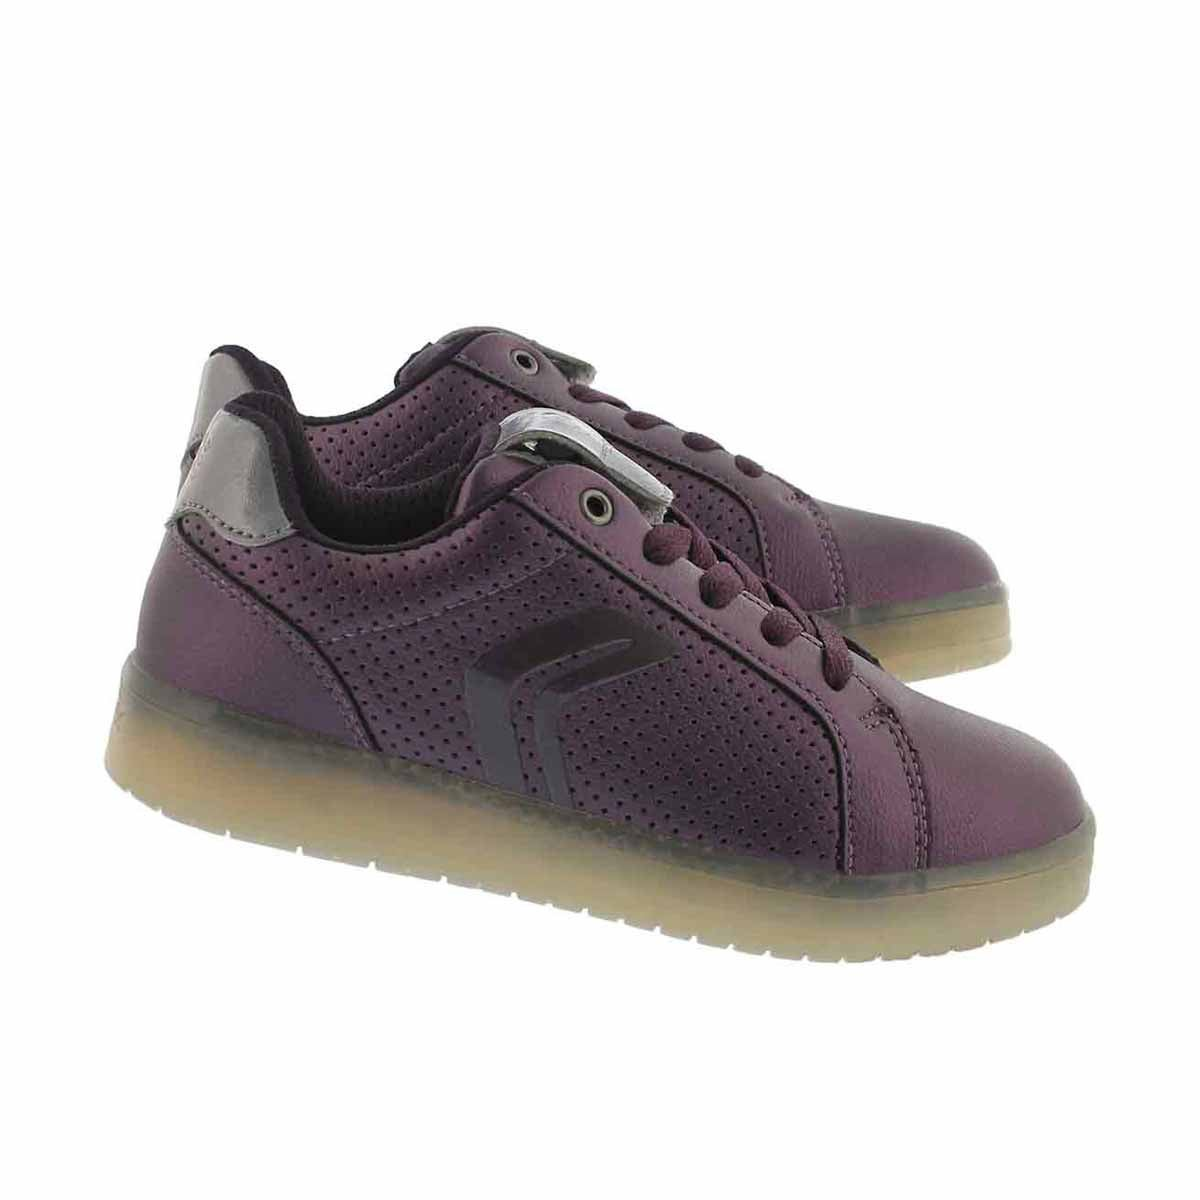 Grls Kommodor prune/slvr lace up sneaker